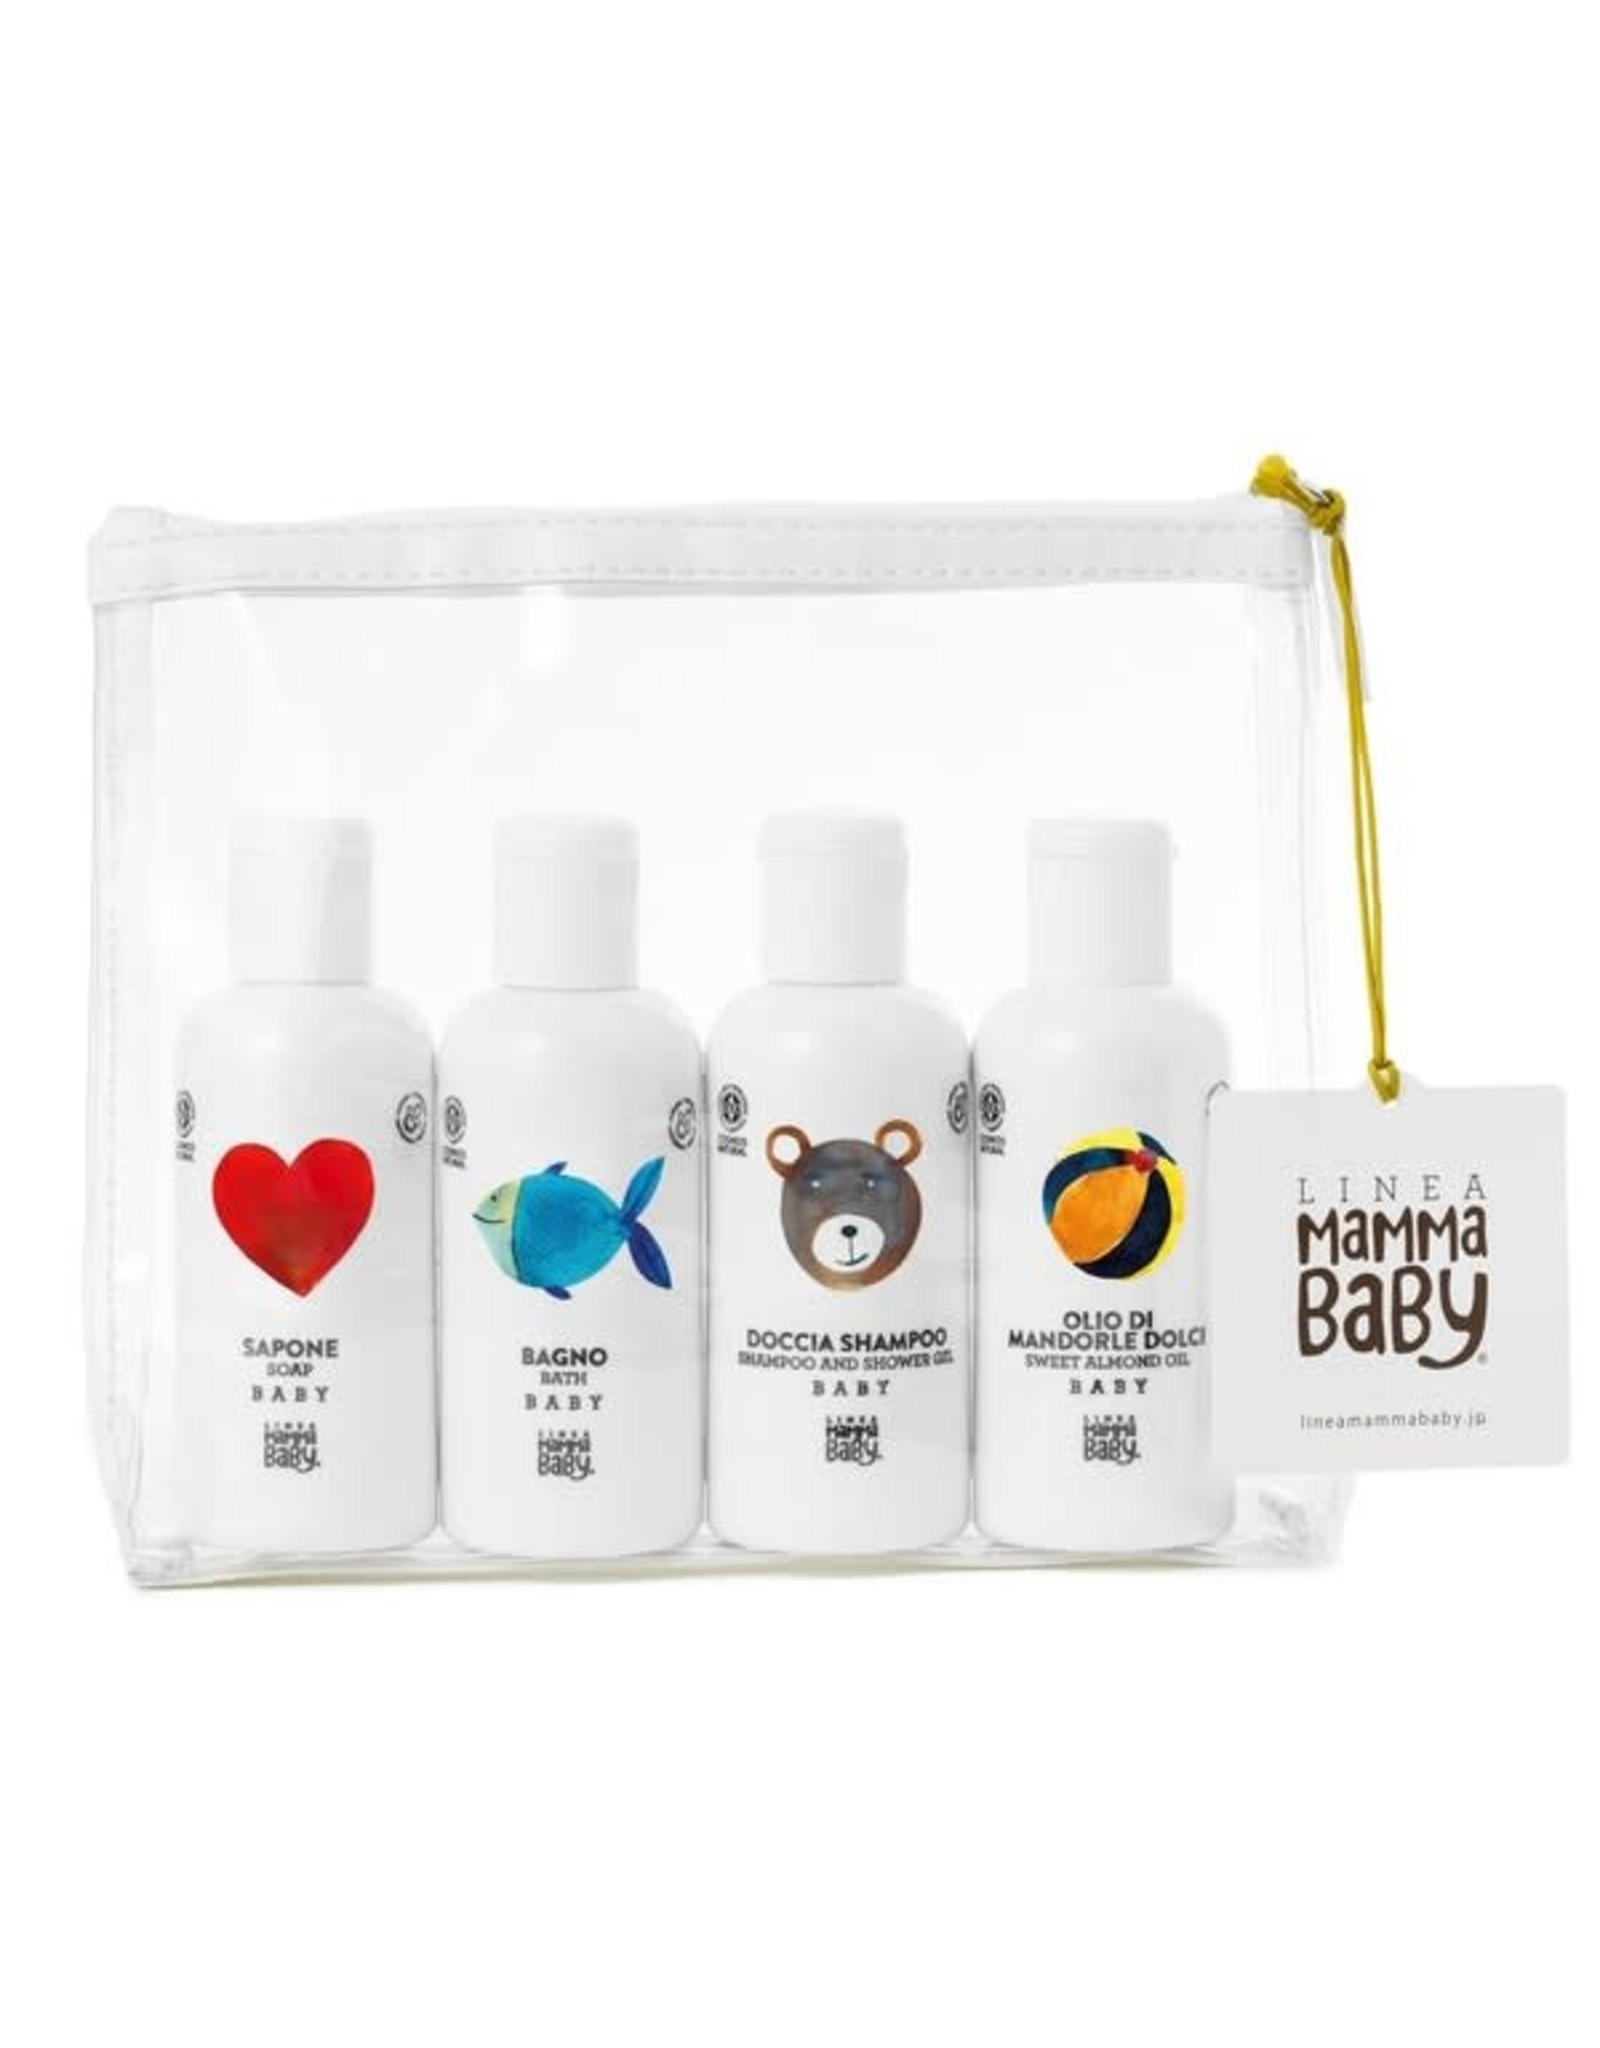 Linea MammaBaby Linea MammaBaby Travel set / Pochette Cosmos Natural 4x100ml